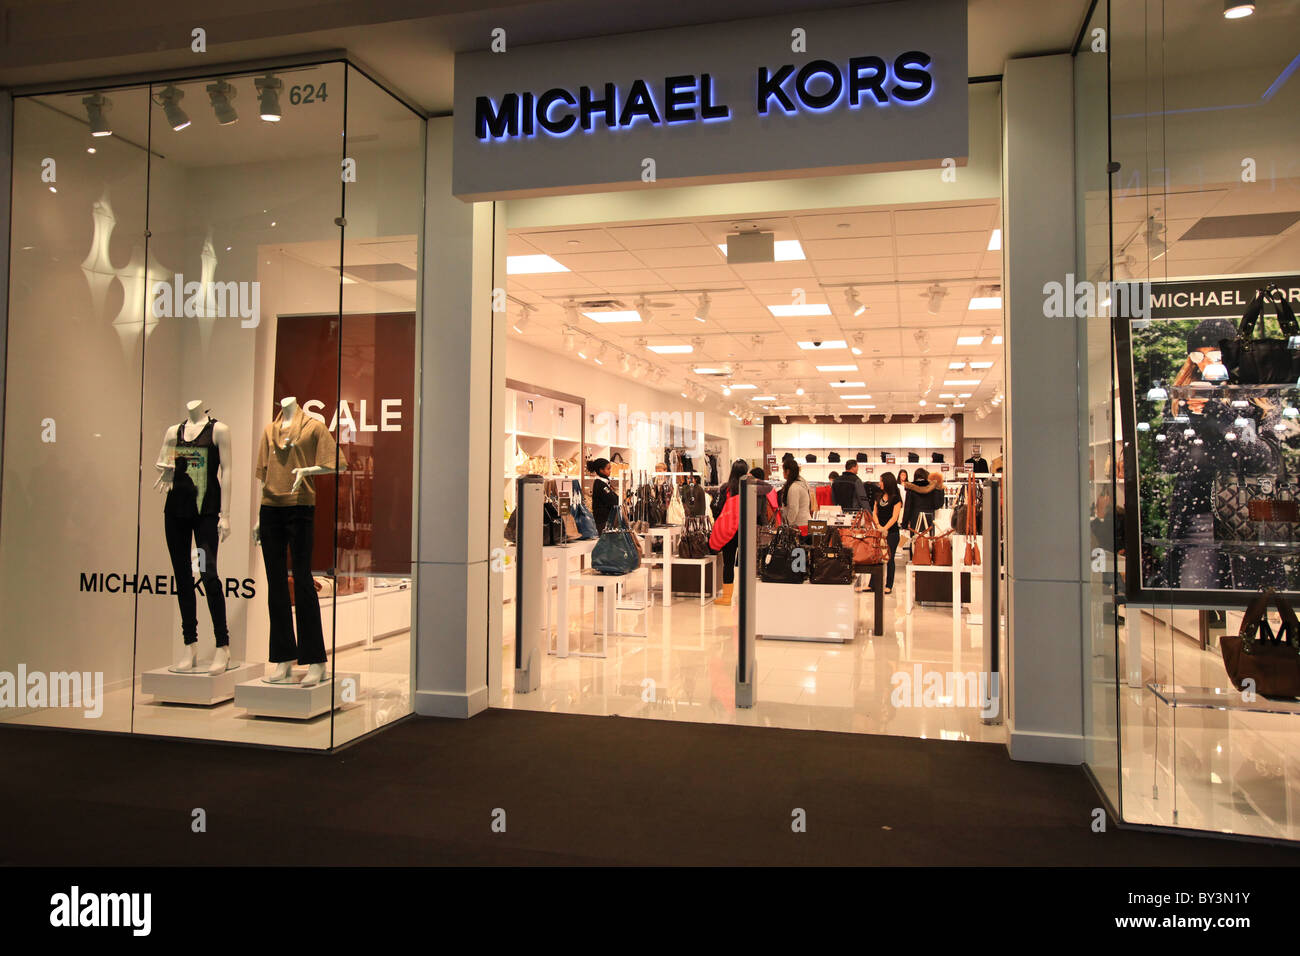 Michael Kors Handbags Clearance Sale 90% off! Latest Michael Kors handbags,bags,purses,wallets Collection For Jet Set From Luxury Designer KORS Michael Kors Outlet!